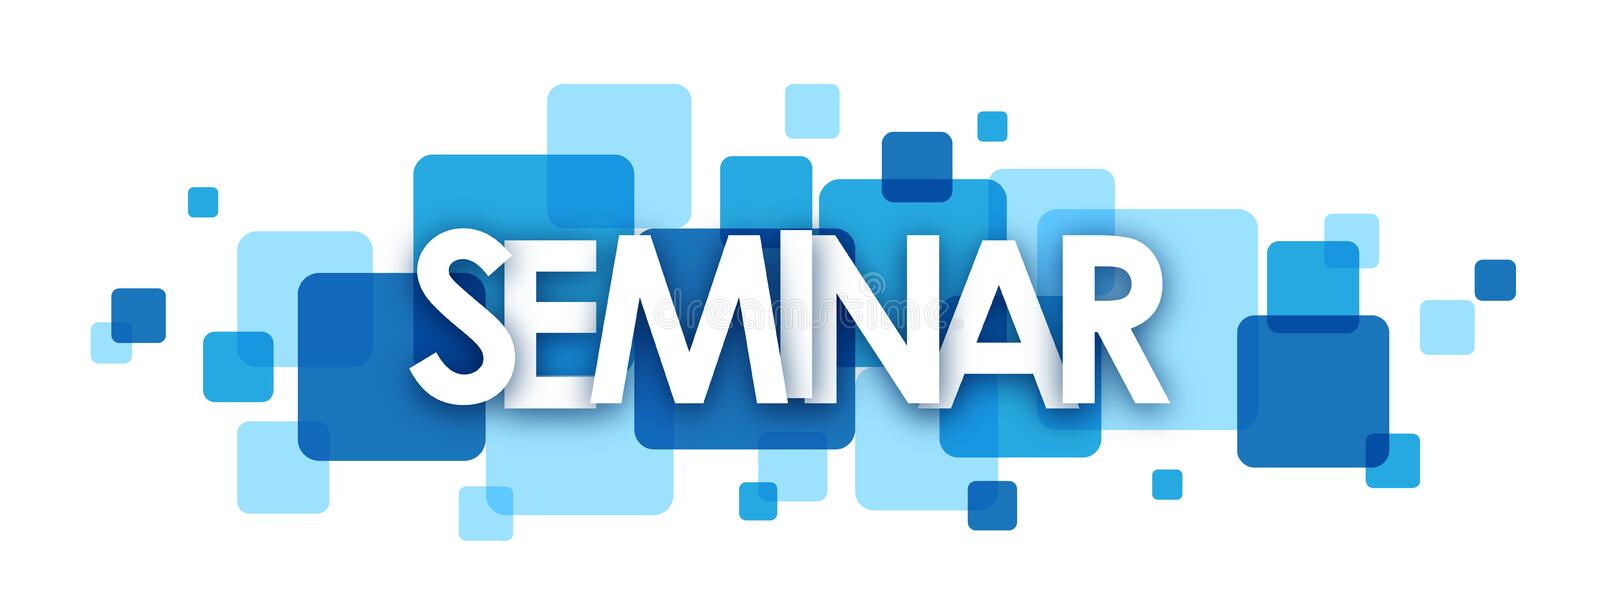 SEMINAR banner on overlapping blue squares. SEMINAR overlapping letters banner on blue semi-transparent squares. Vector vector illustration